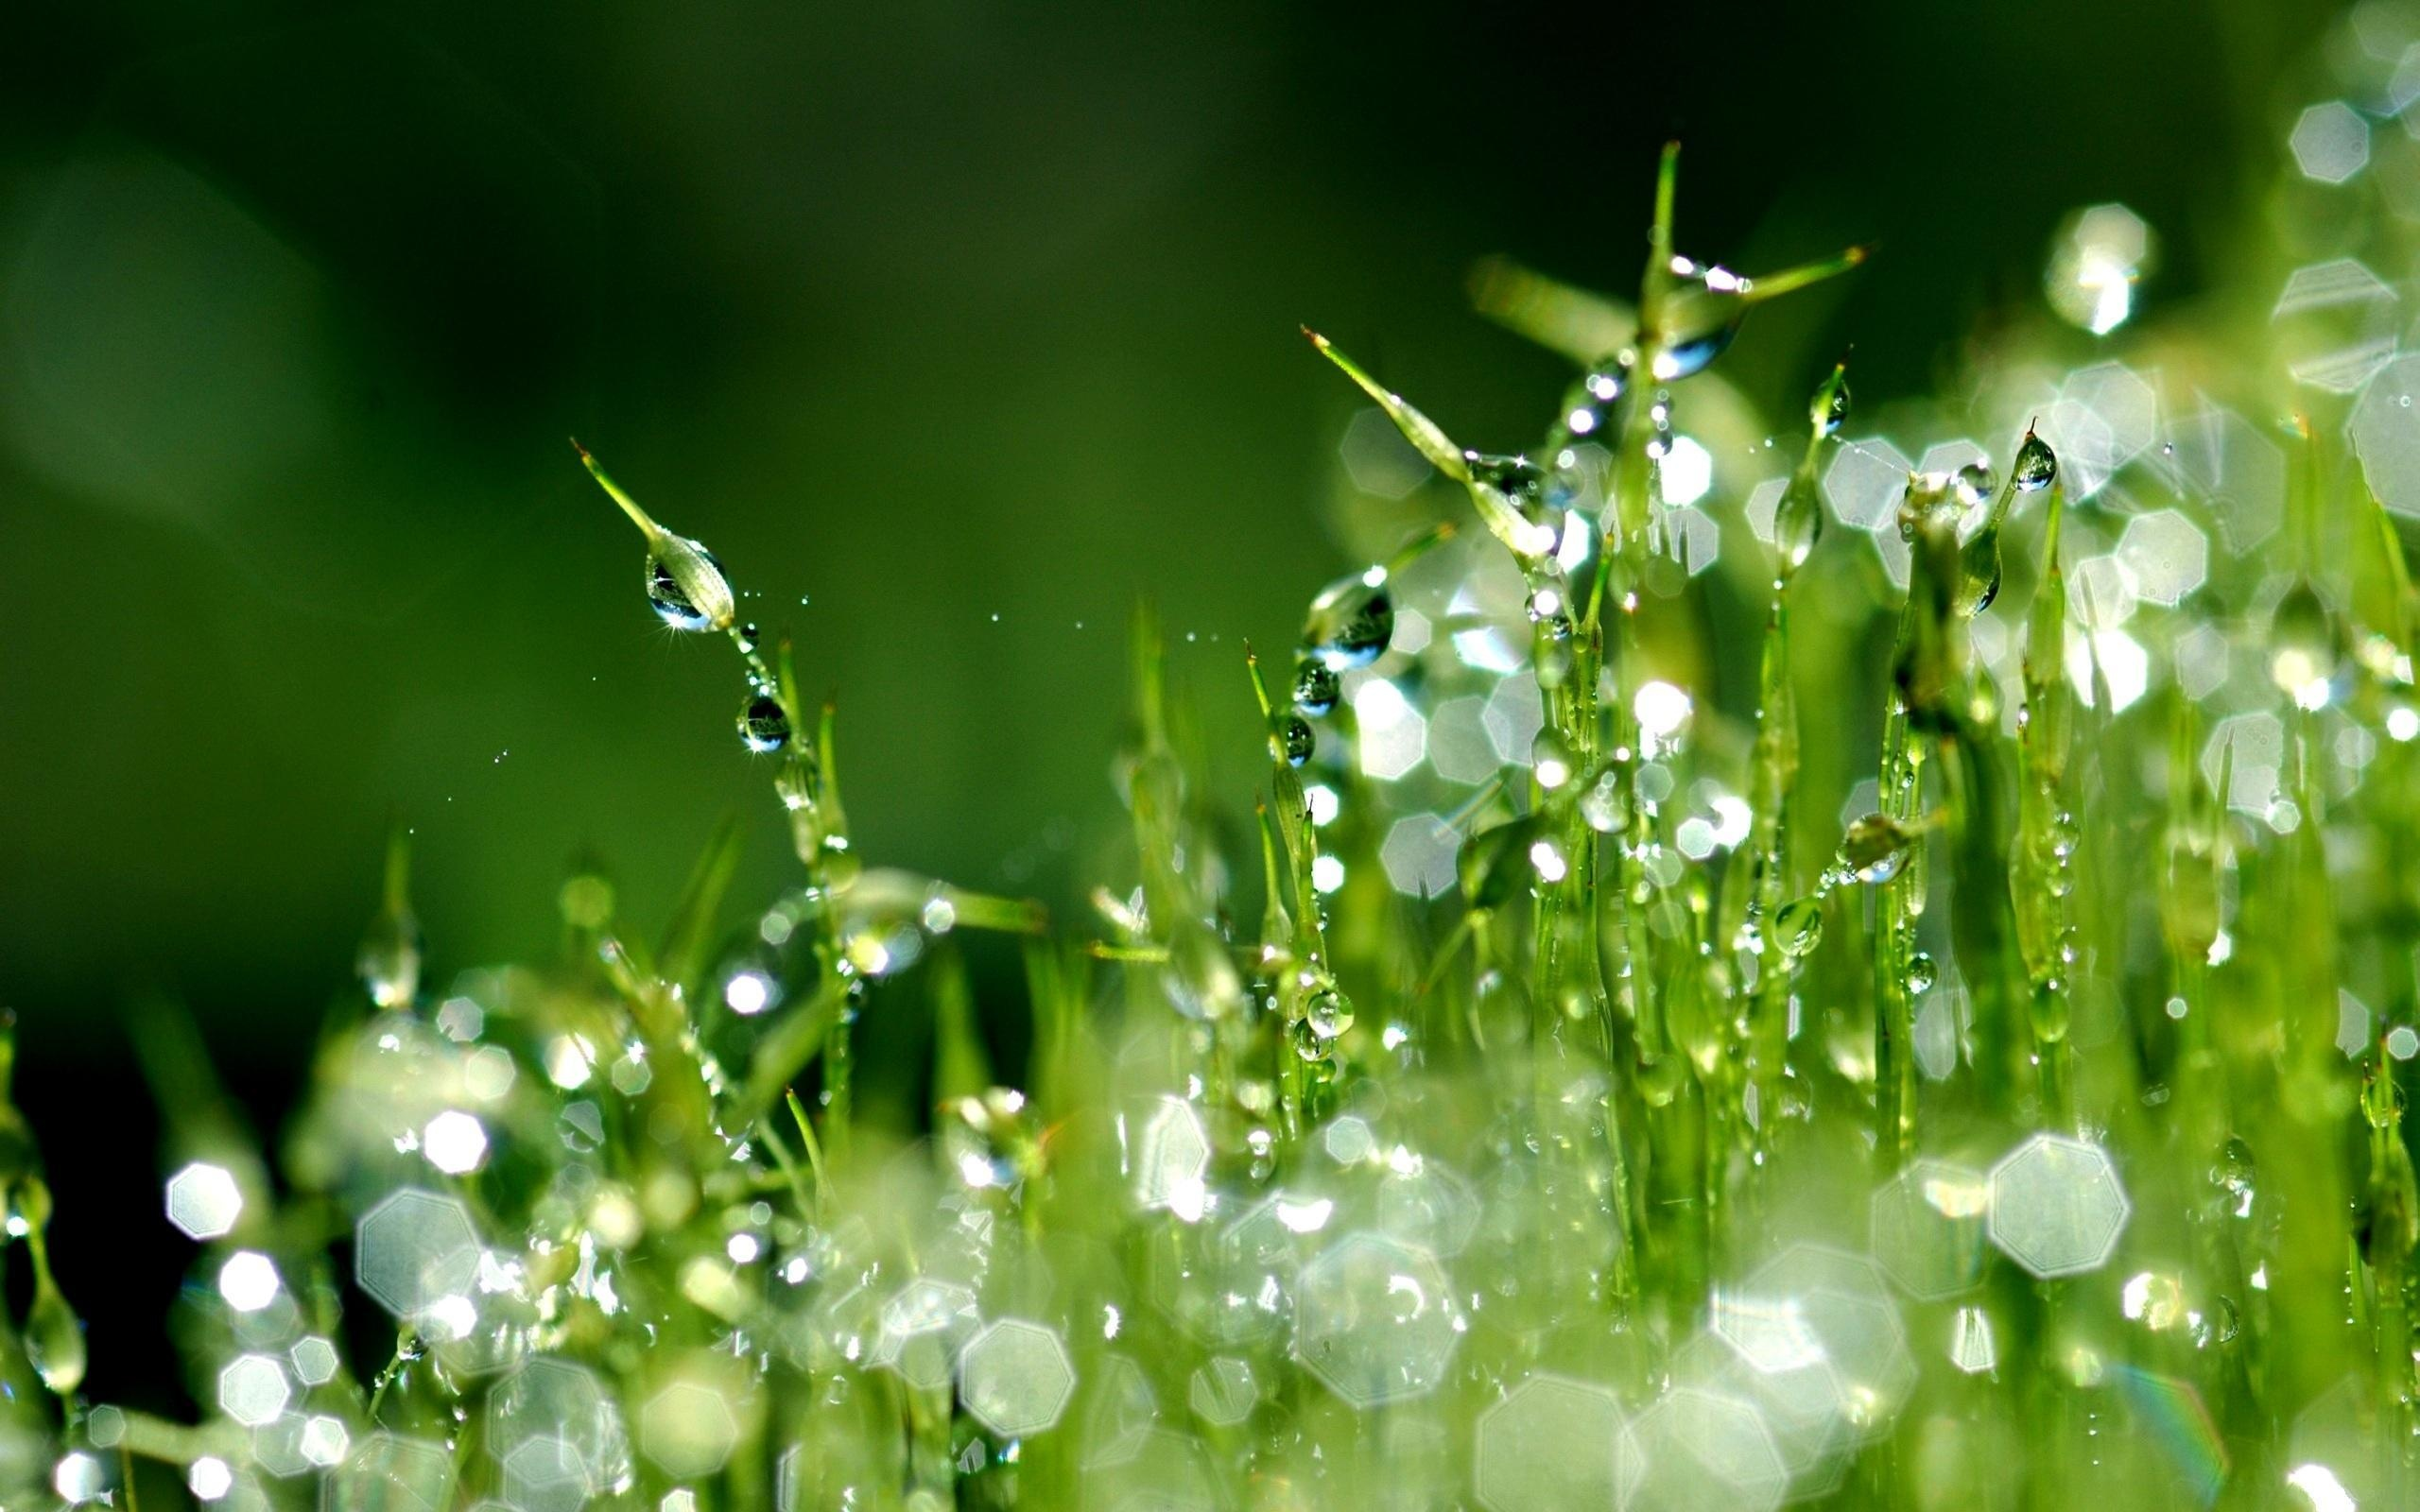 dew background 39907